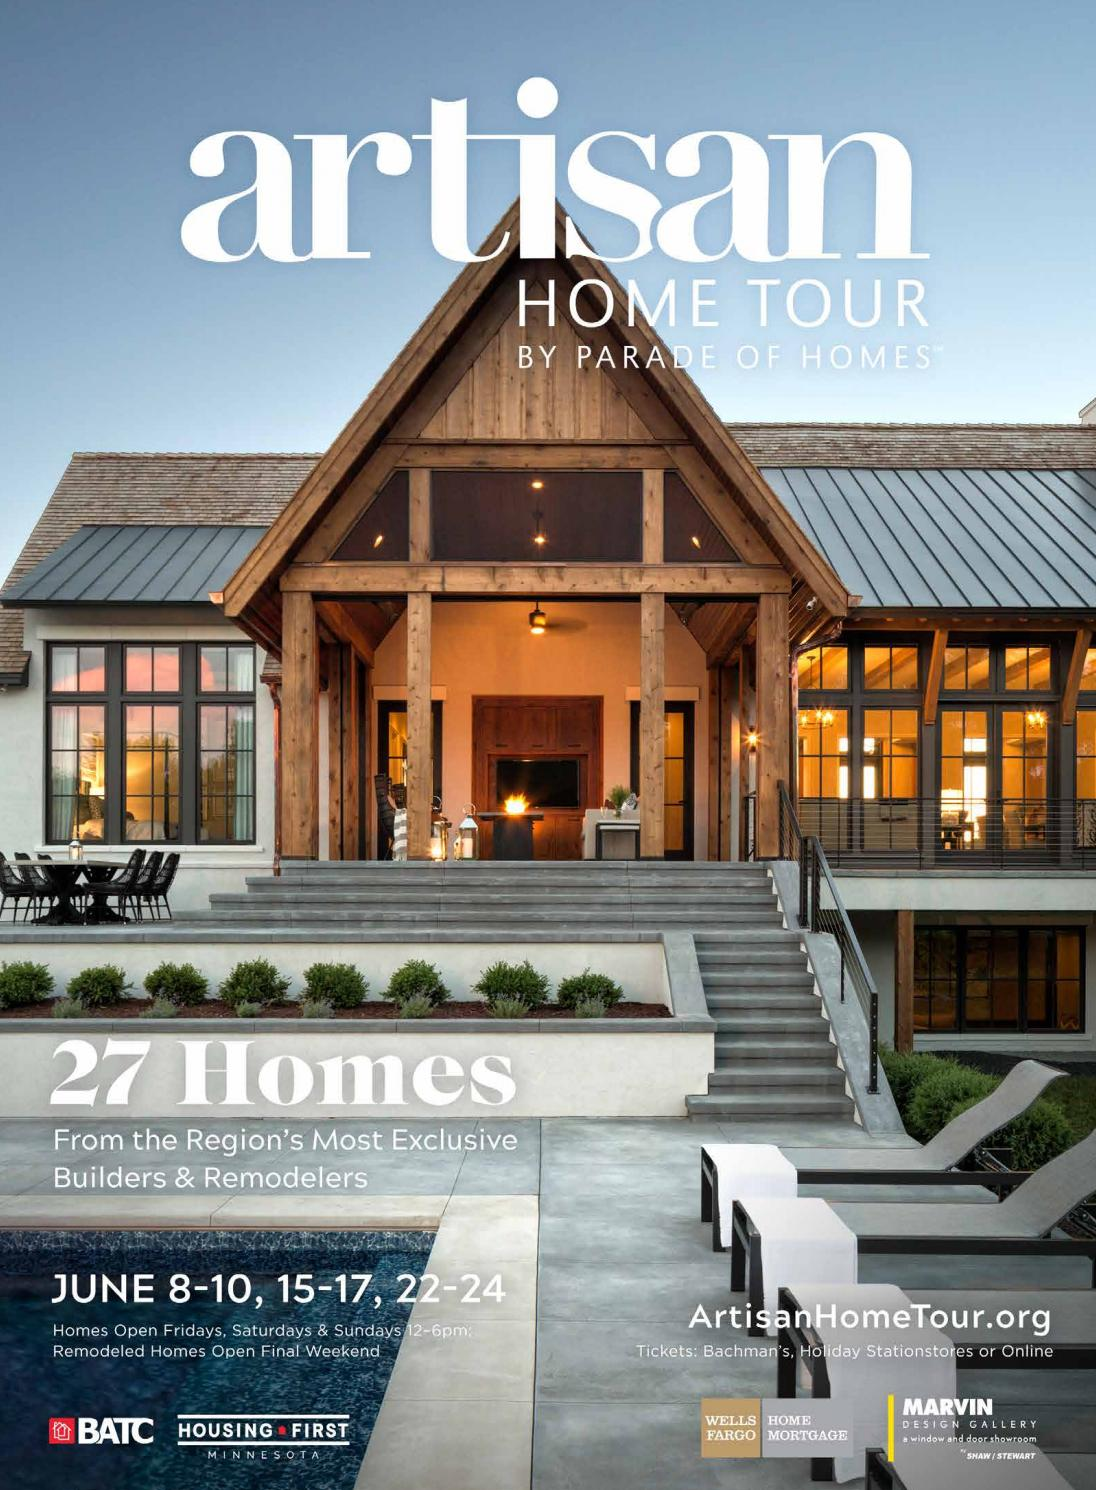 Artisan home tour by parade of homes 2018 guidebook by batc housing first minnesota issuu